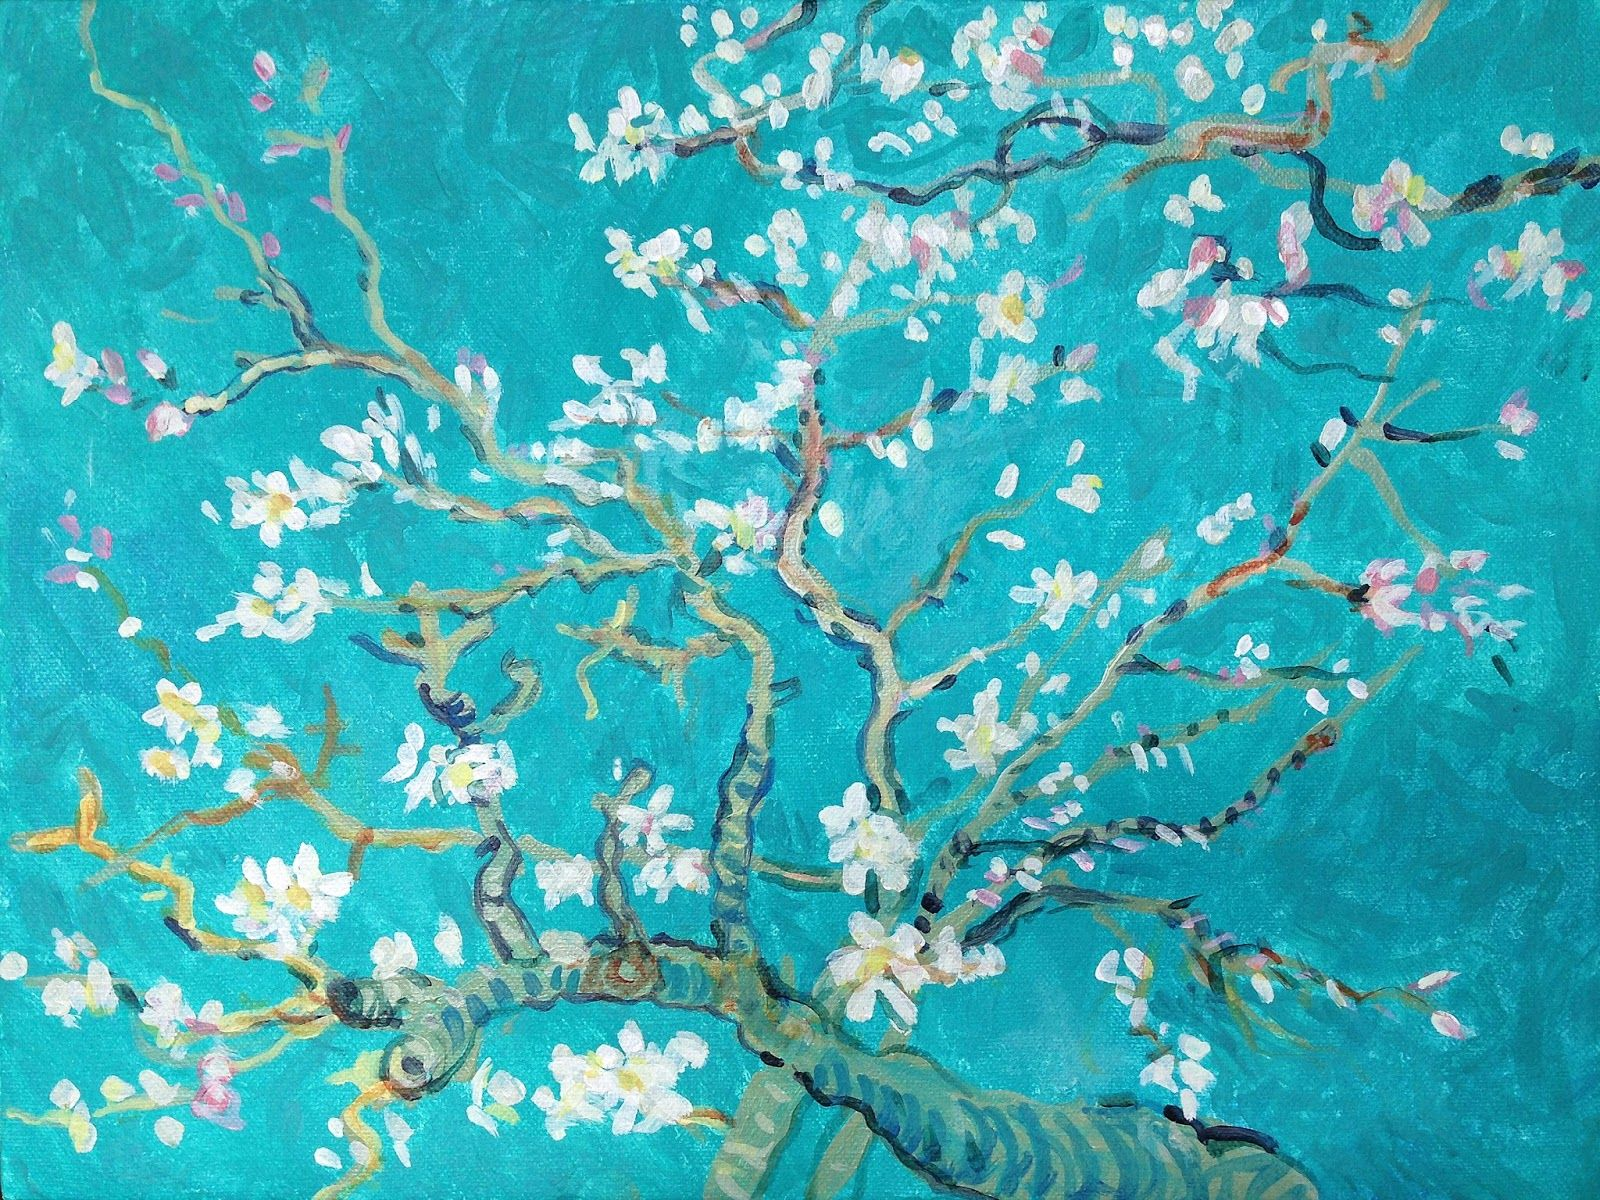 1600x1200 Wiley Purkey: Wine and Paint Class - Van Gogh's Almond Blossoms